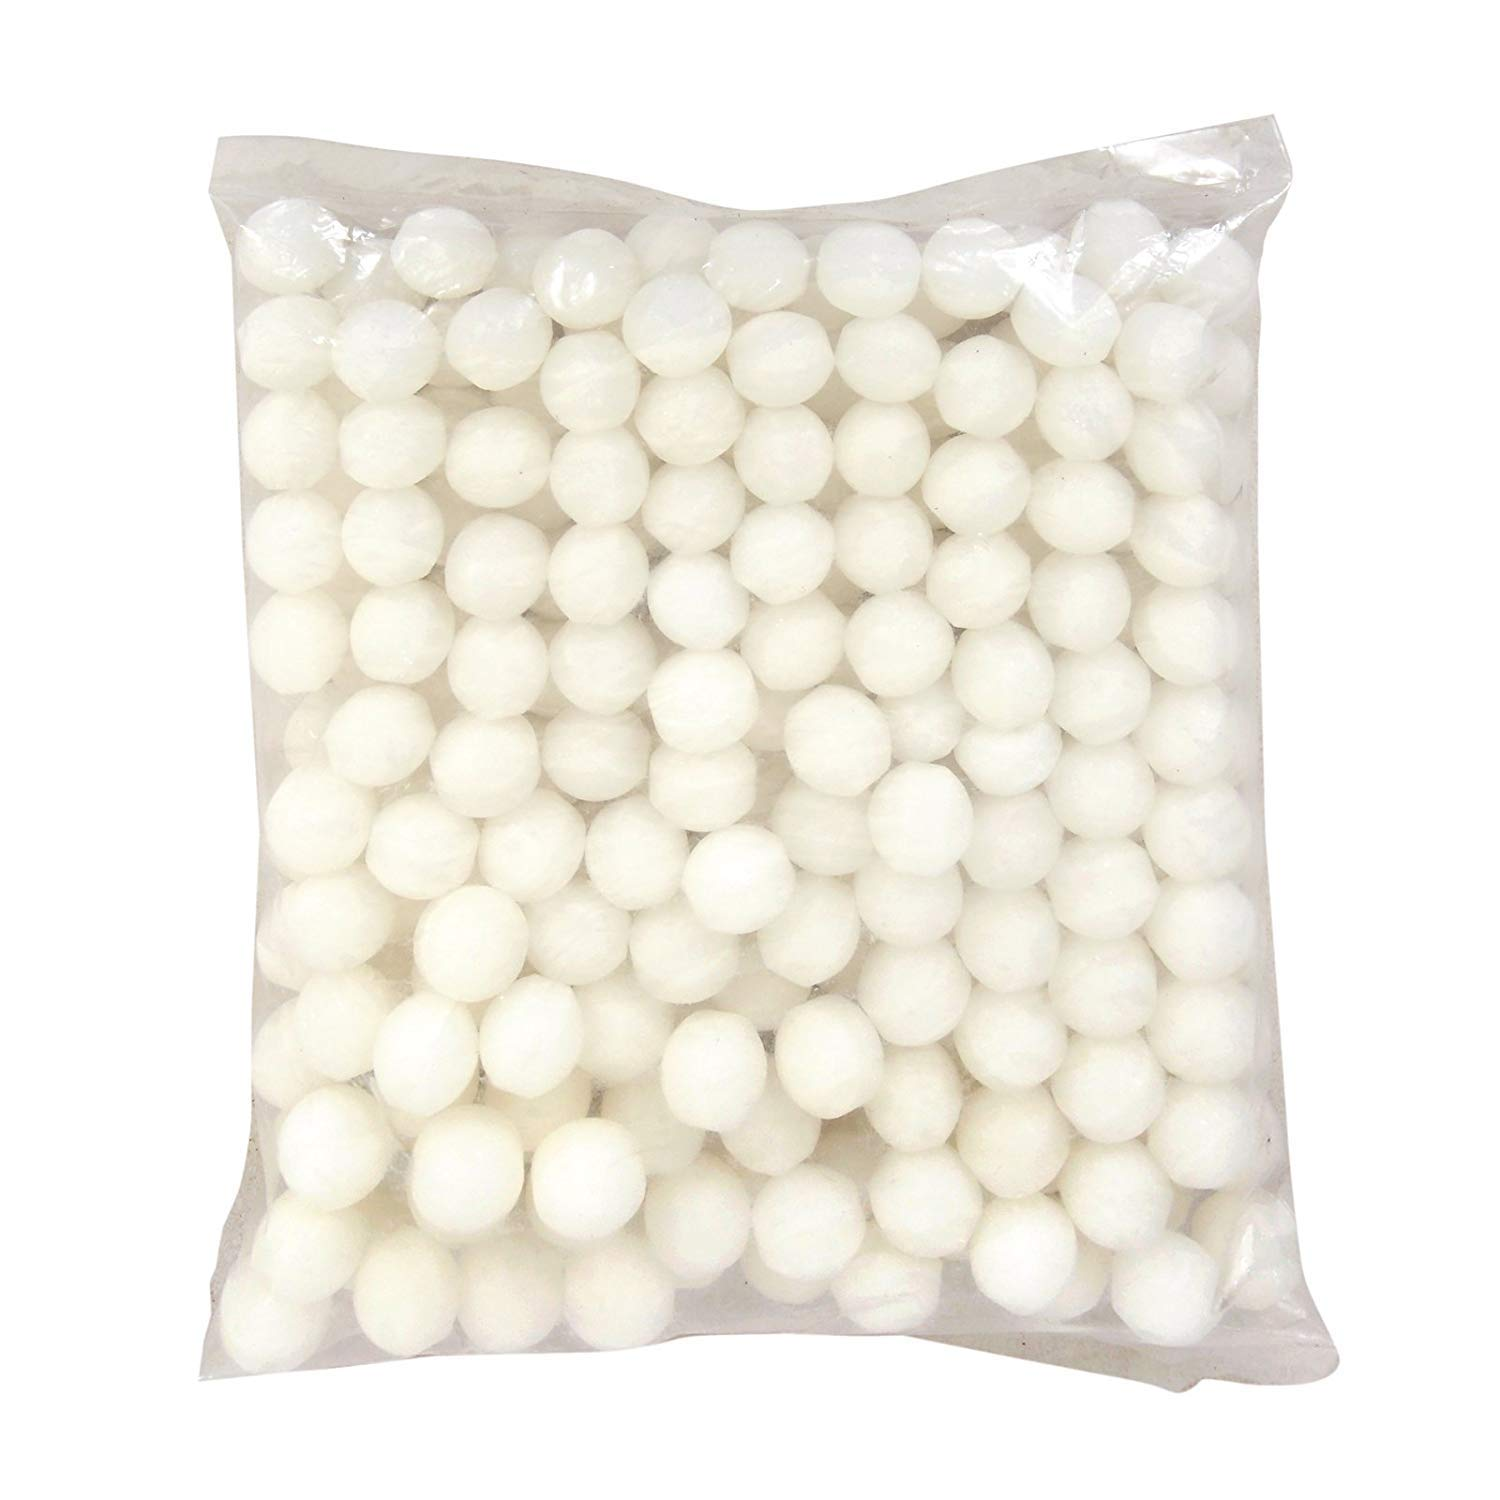 Pure Quality White Napthalene Balls 500 Grams